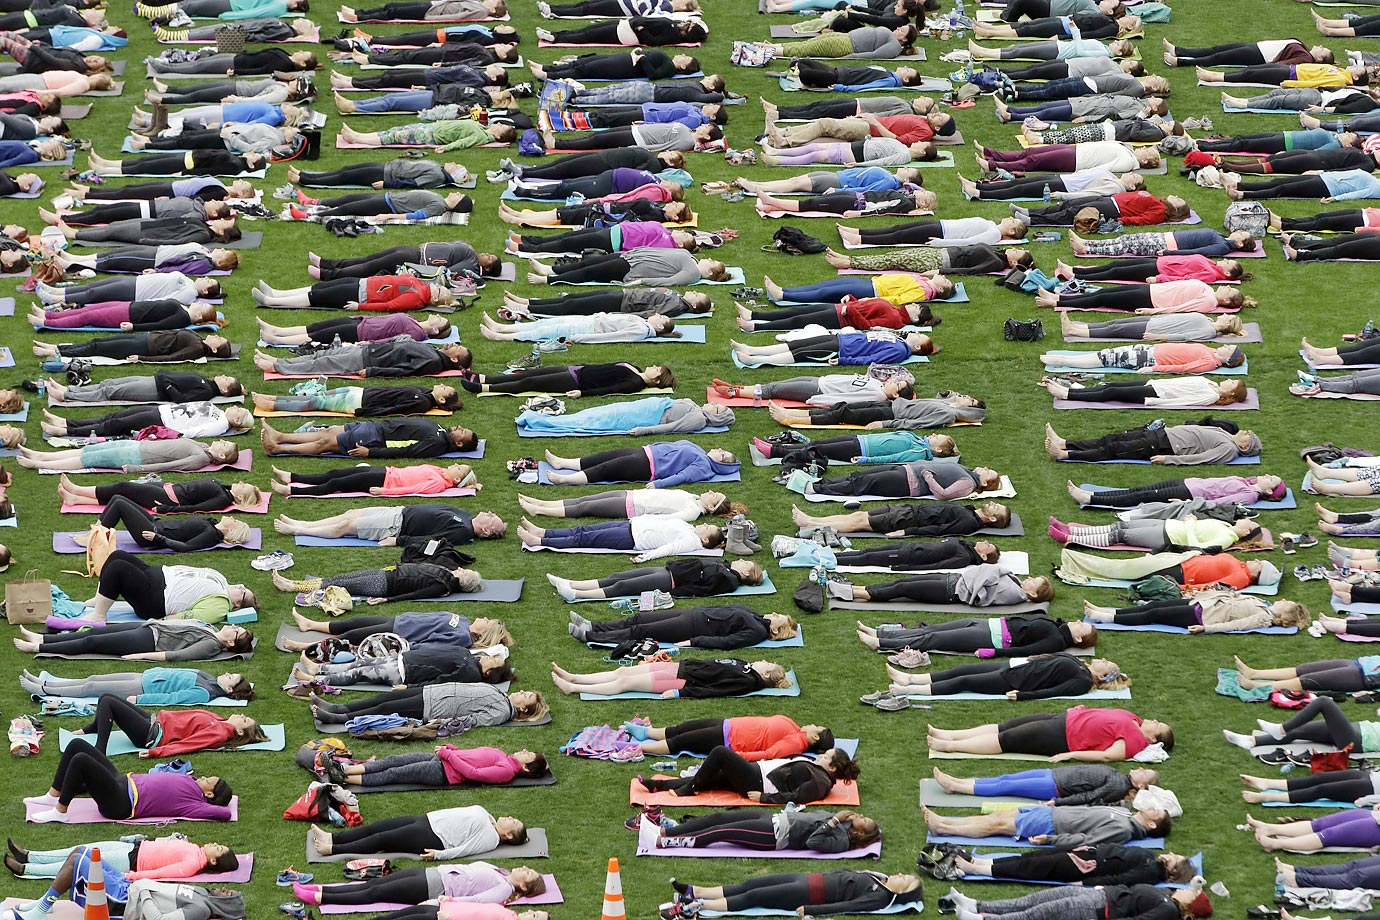 About 1,000 people took place in a yoga class at LP Field (home of the Tennessee Titans), which was a benefit for Soles4Souls, a global not-for-profit organization that distributes shoes and clothing.